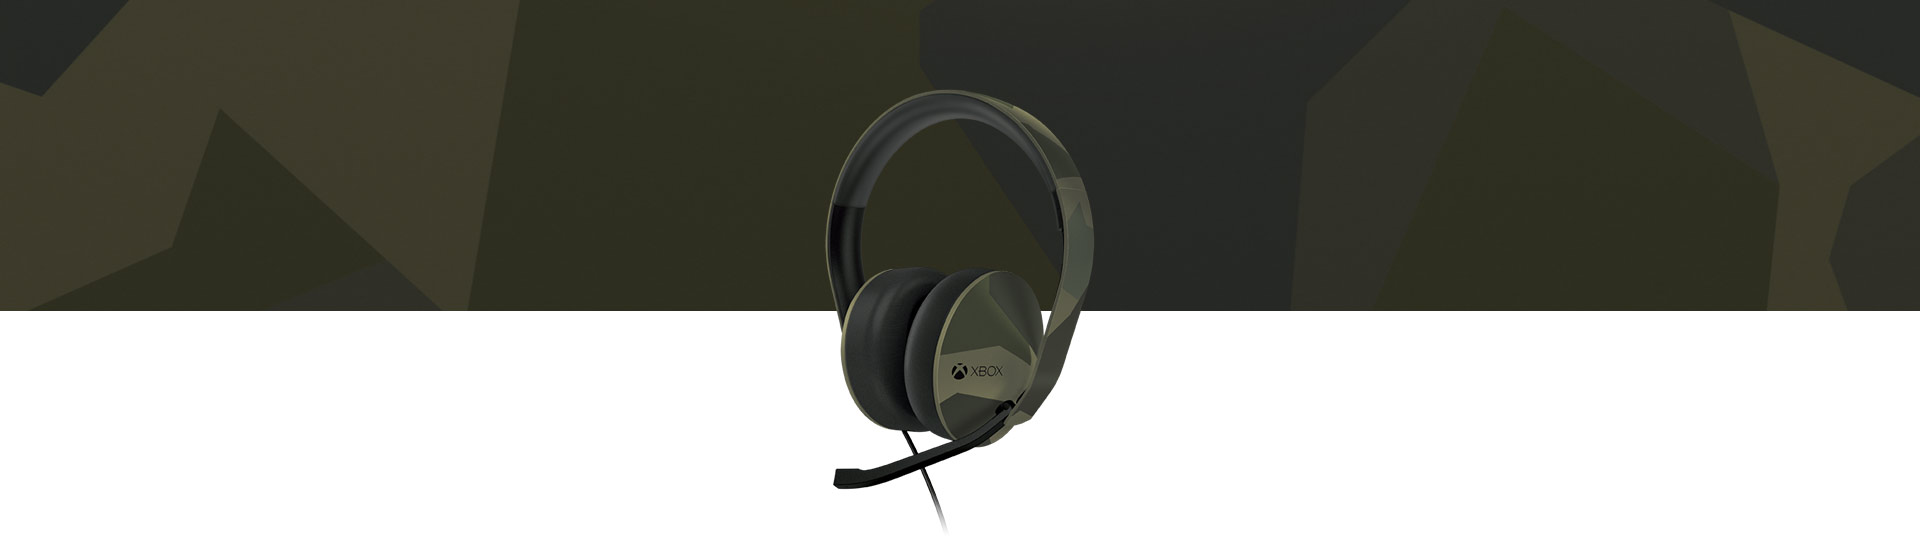 Xbox One Special Edition Armed Forces-stereoheadset